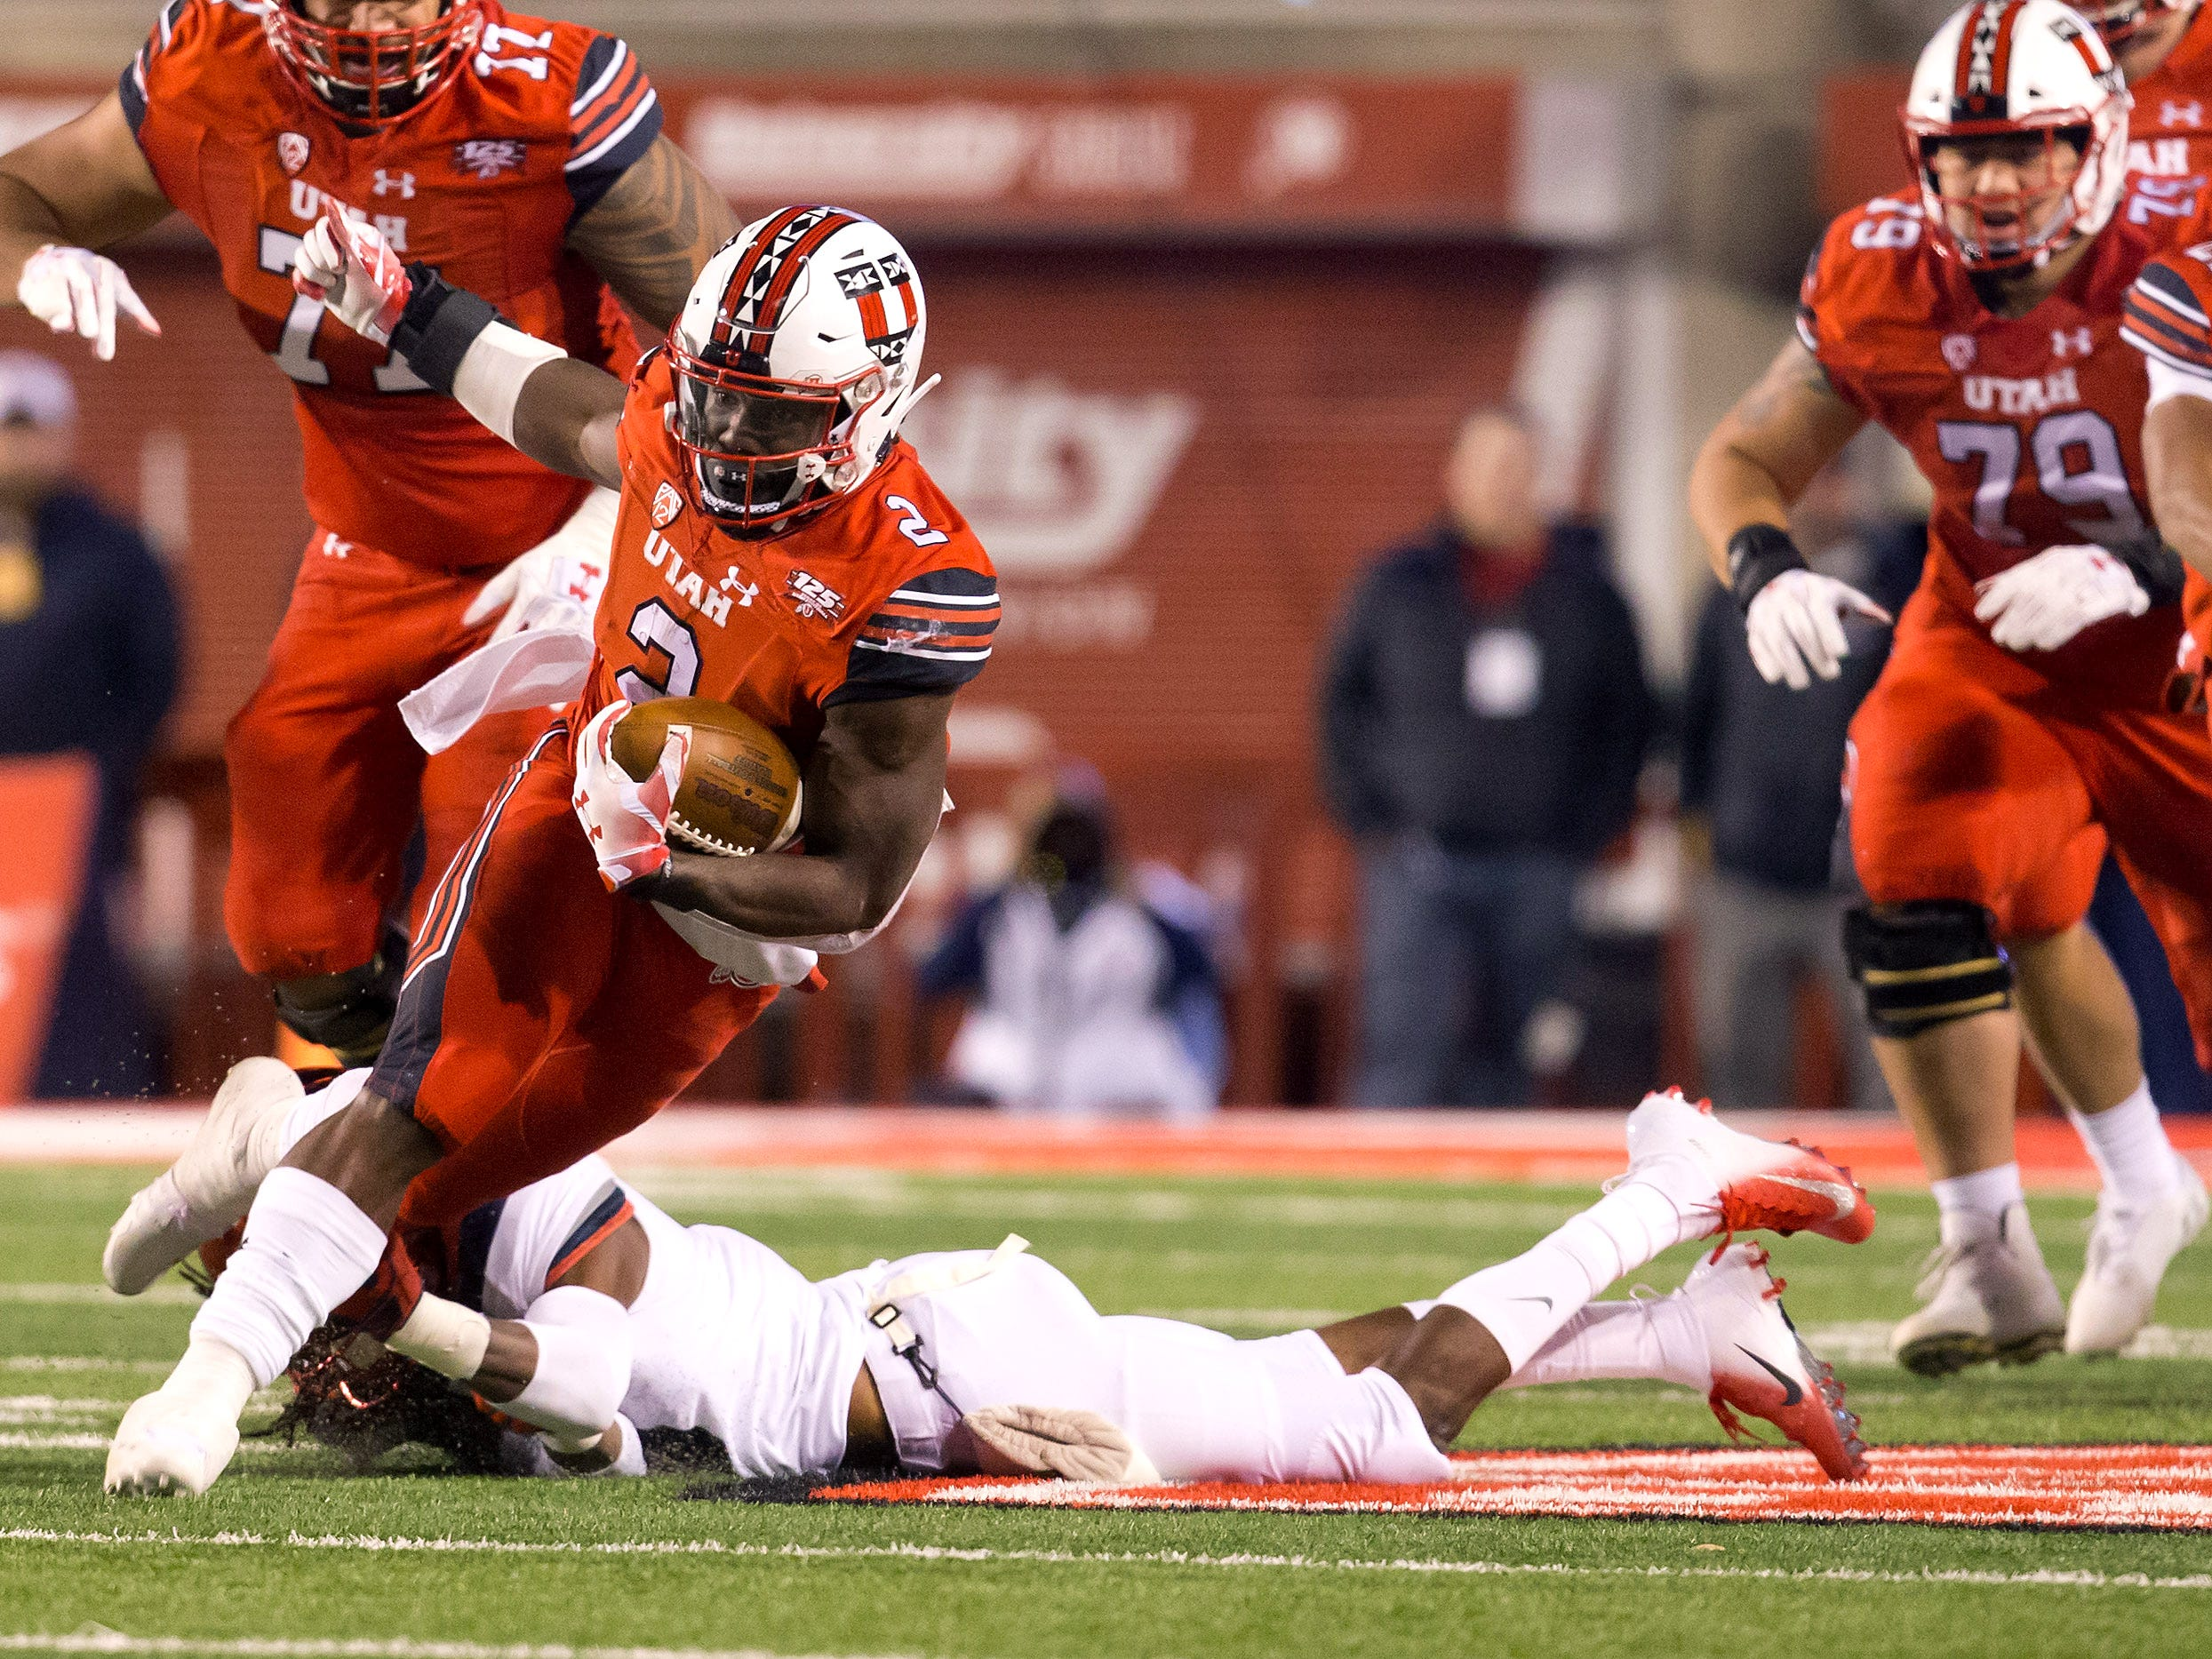 Oct 12, 2018; Salt Lake City, UT, USA; Utah Utes running back Zack Moss (2) attempts to break free of the grasp of Arizona Wildcats safety Jarrius Wallace (3) during the first half at Rice-Eccles Stadium.